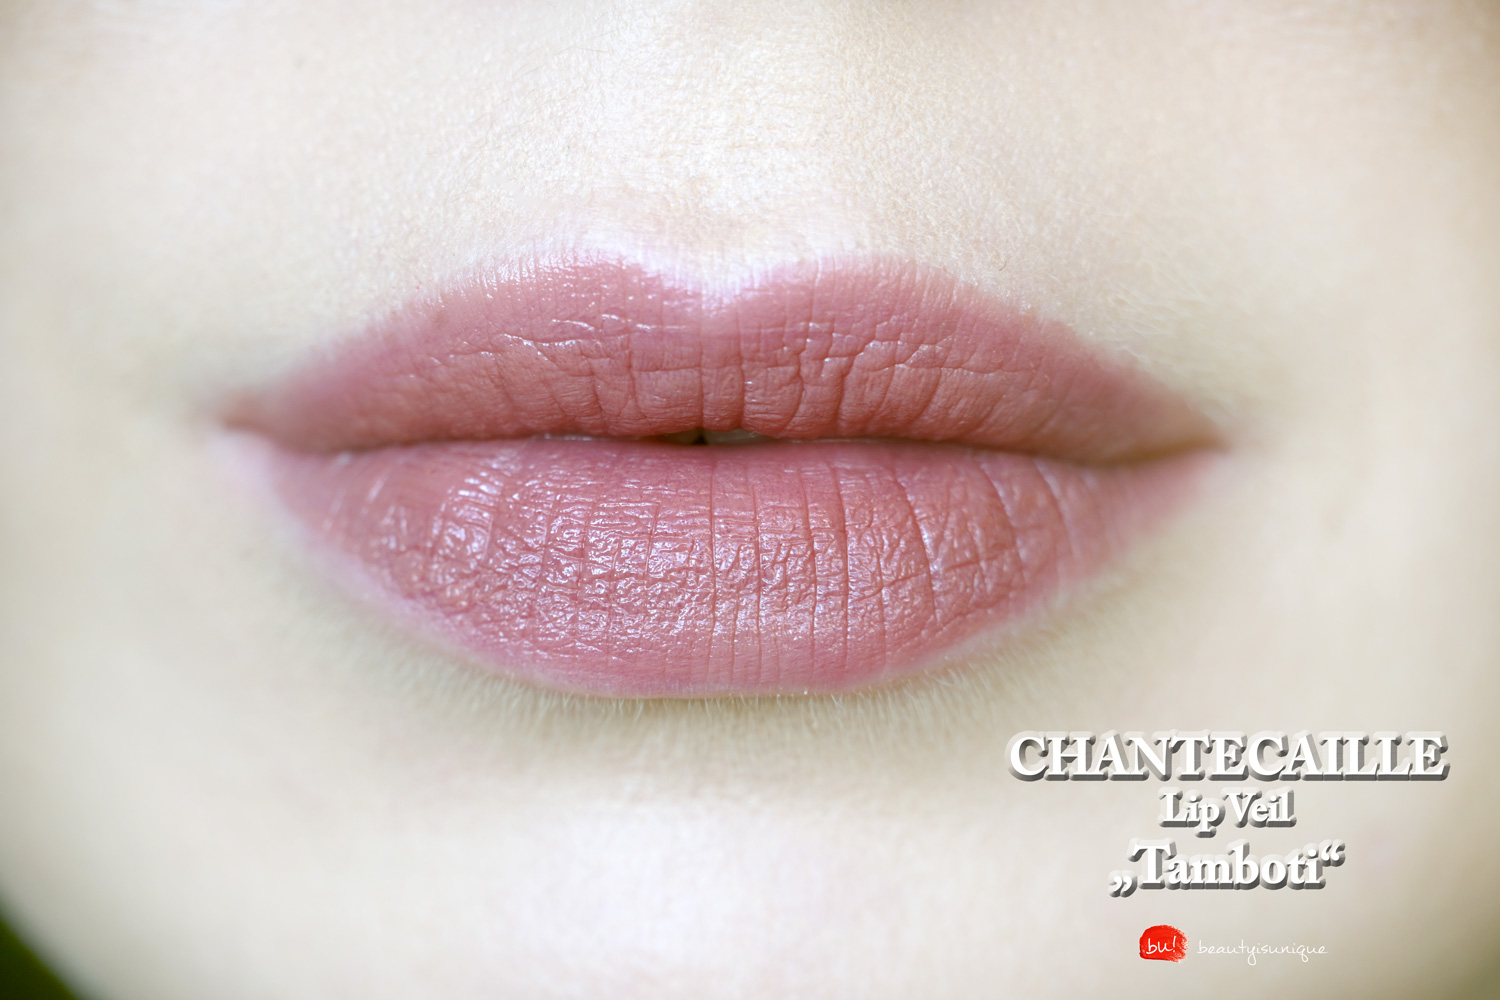 chantecaille-lip-veil-tambotii-swatches